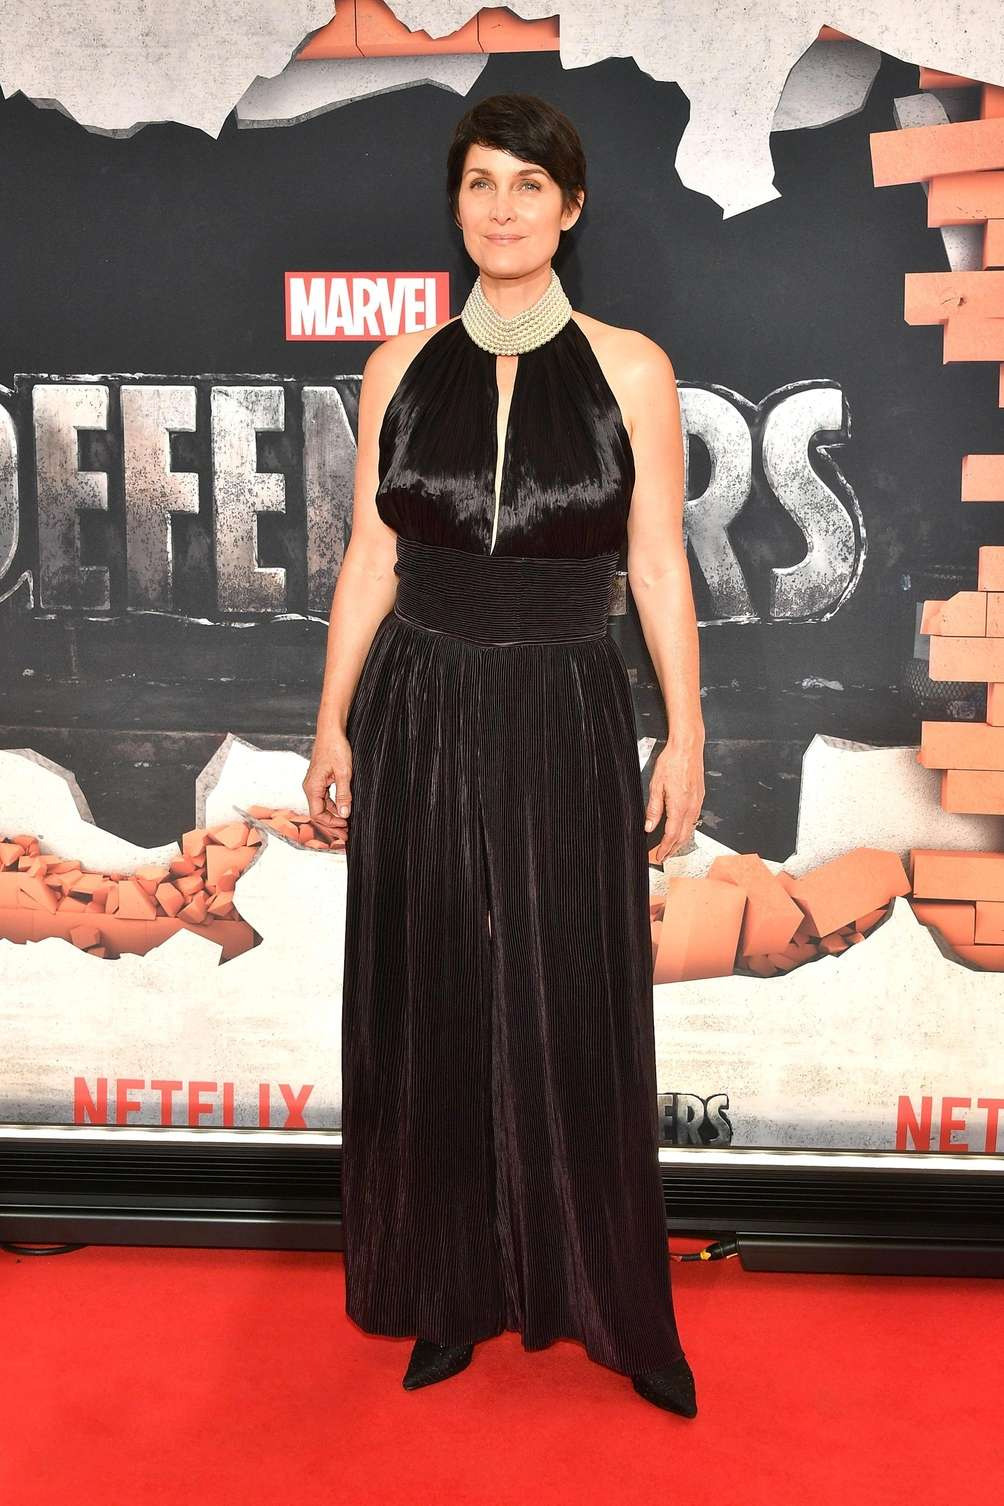 Carrie-Anne Moss attends the New York premiere of